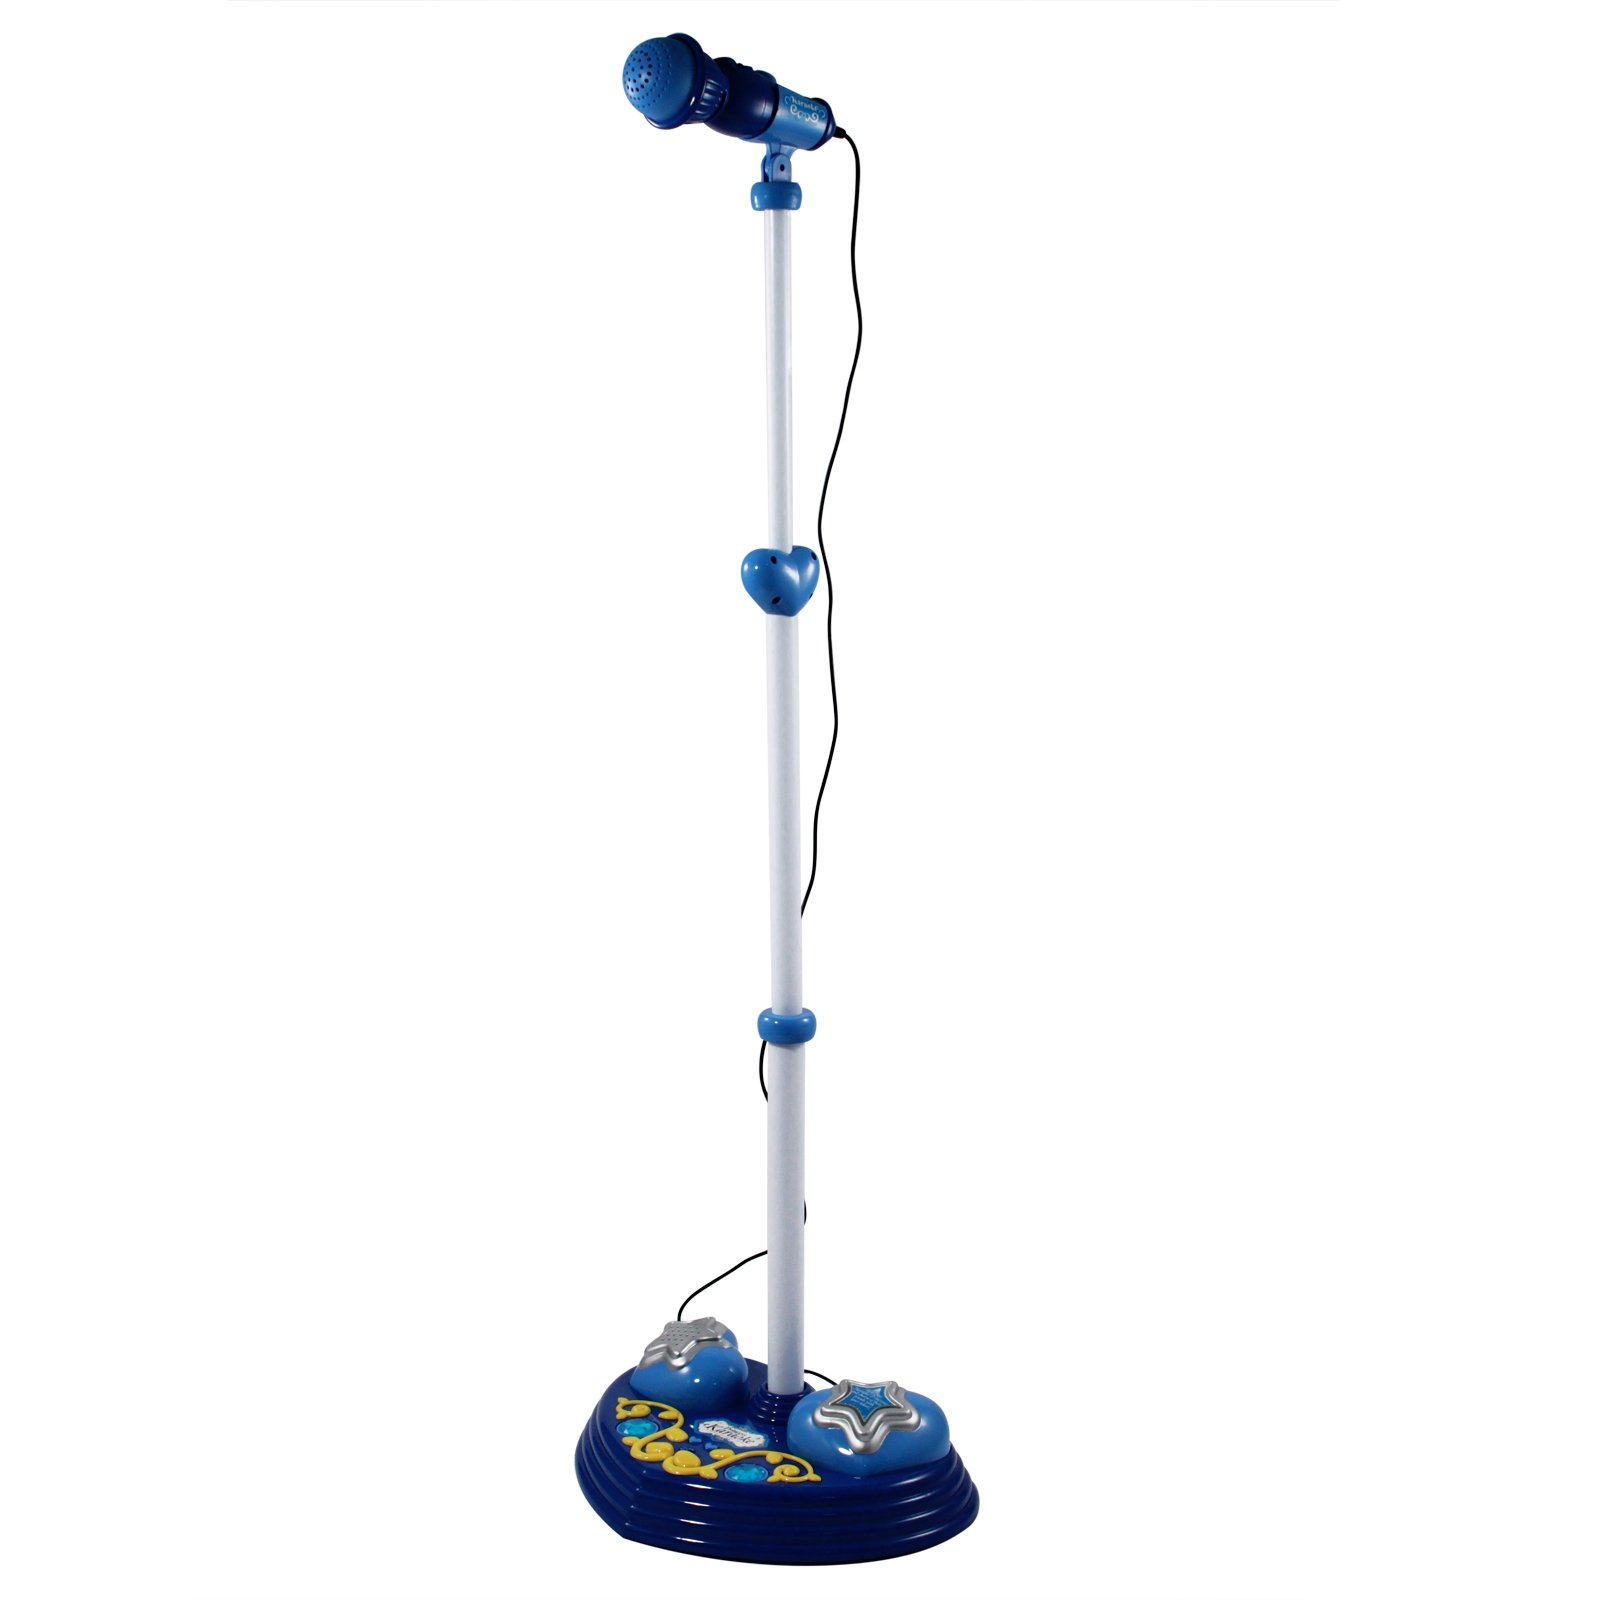 Super Star Kids Android iPhone MP3 Supported Microphone and Karaoke Stand - Blue by Kid Fun (Image #1)